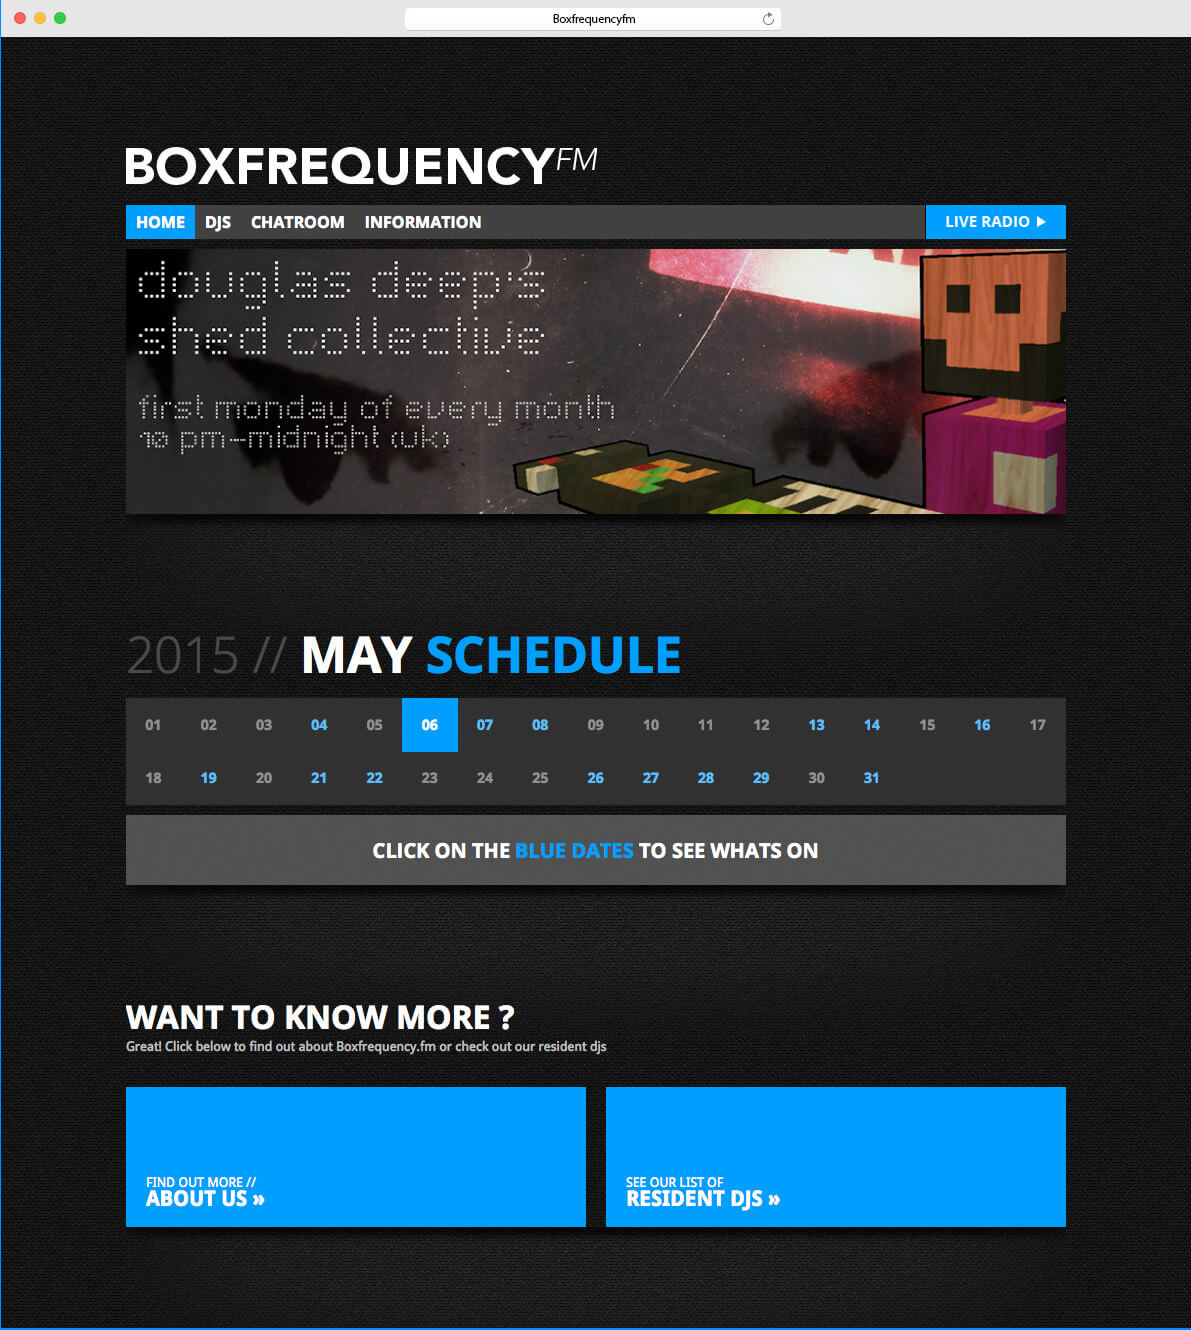 Boxfrequency.fm homepage design